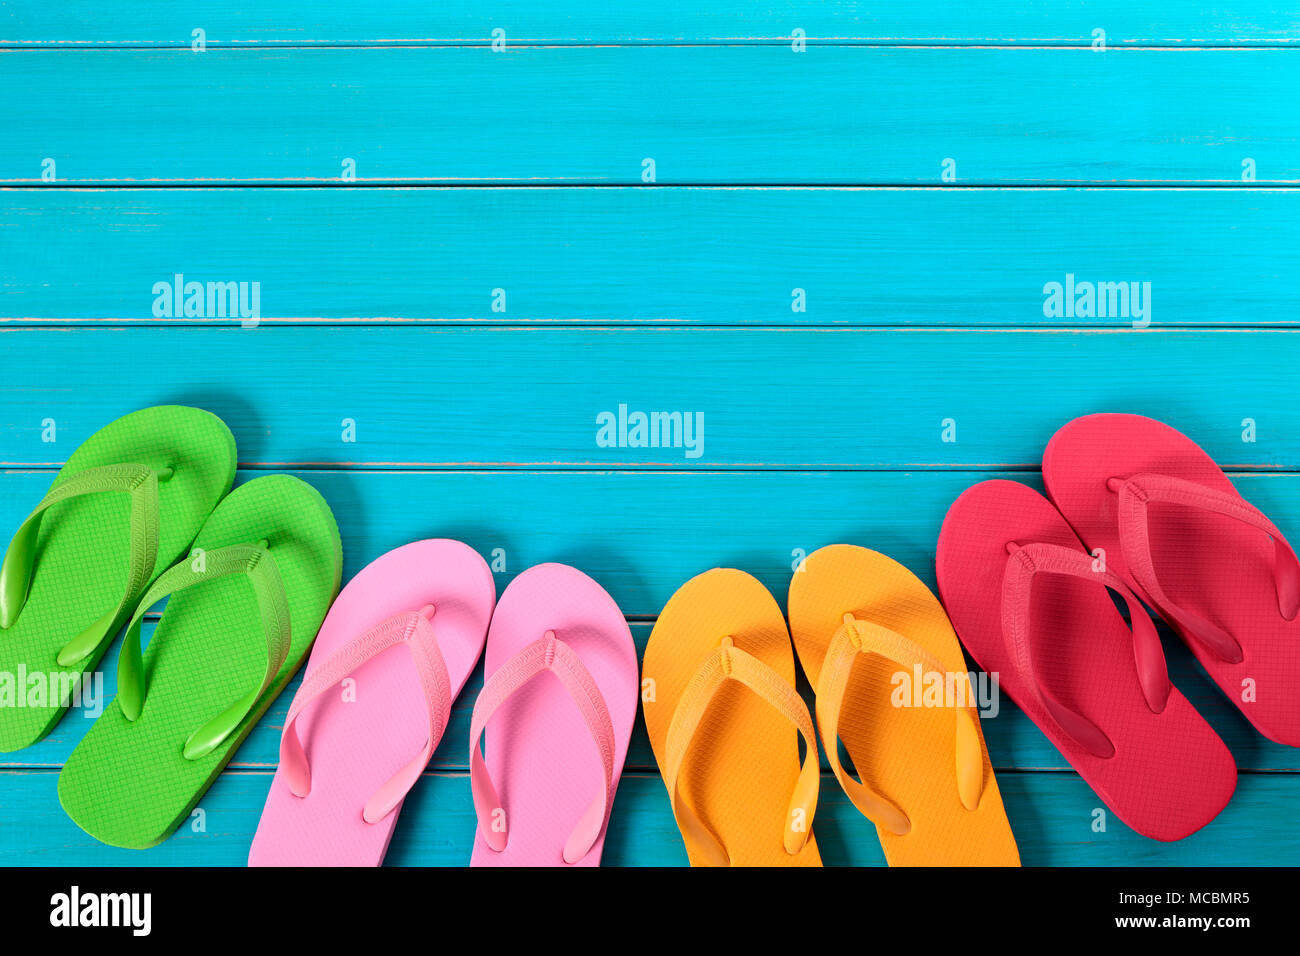 3b3715dd819 Row of colorful flip flops on old weathered blue painted beach decking.  Space for copy.